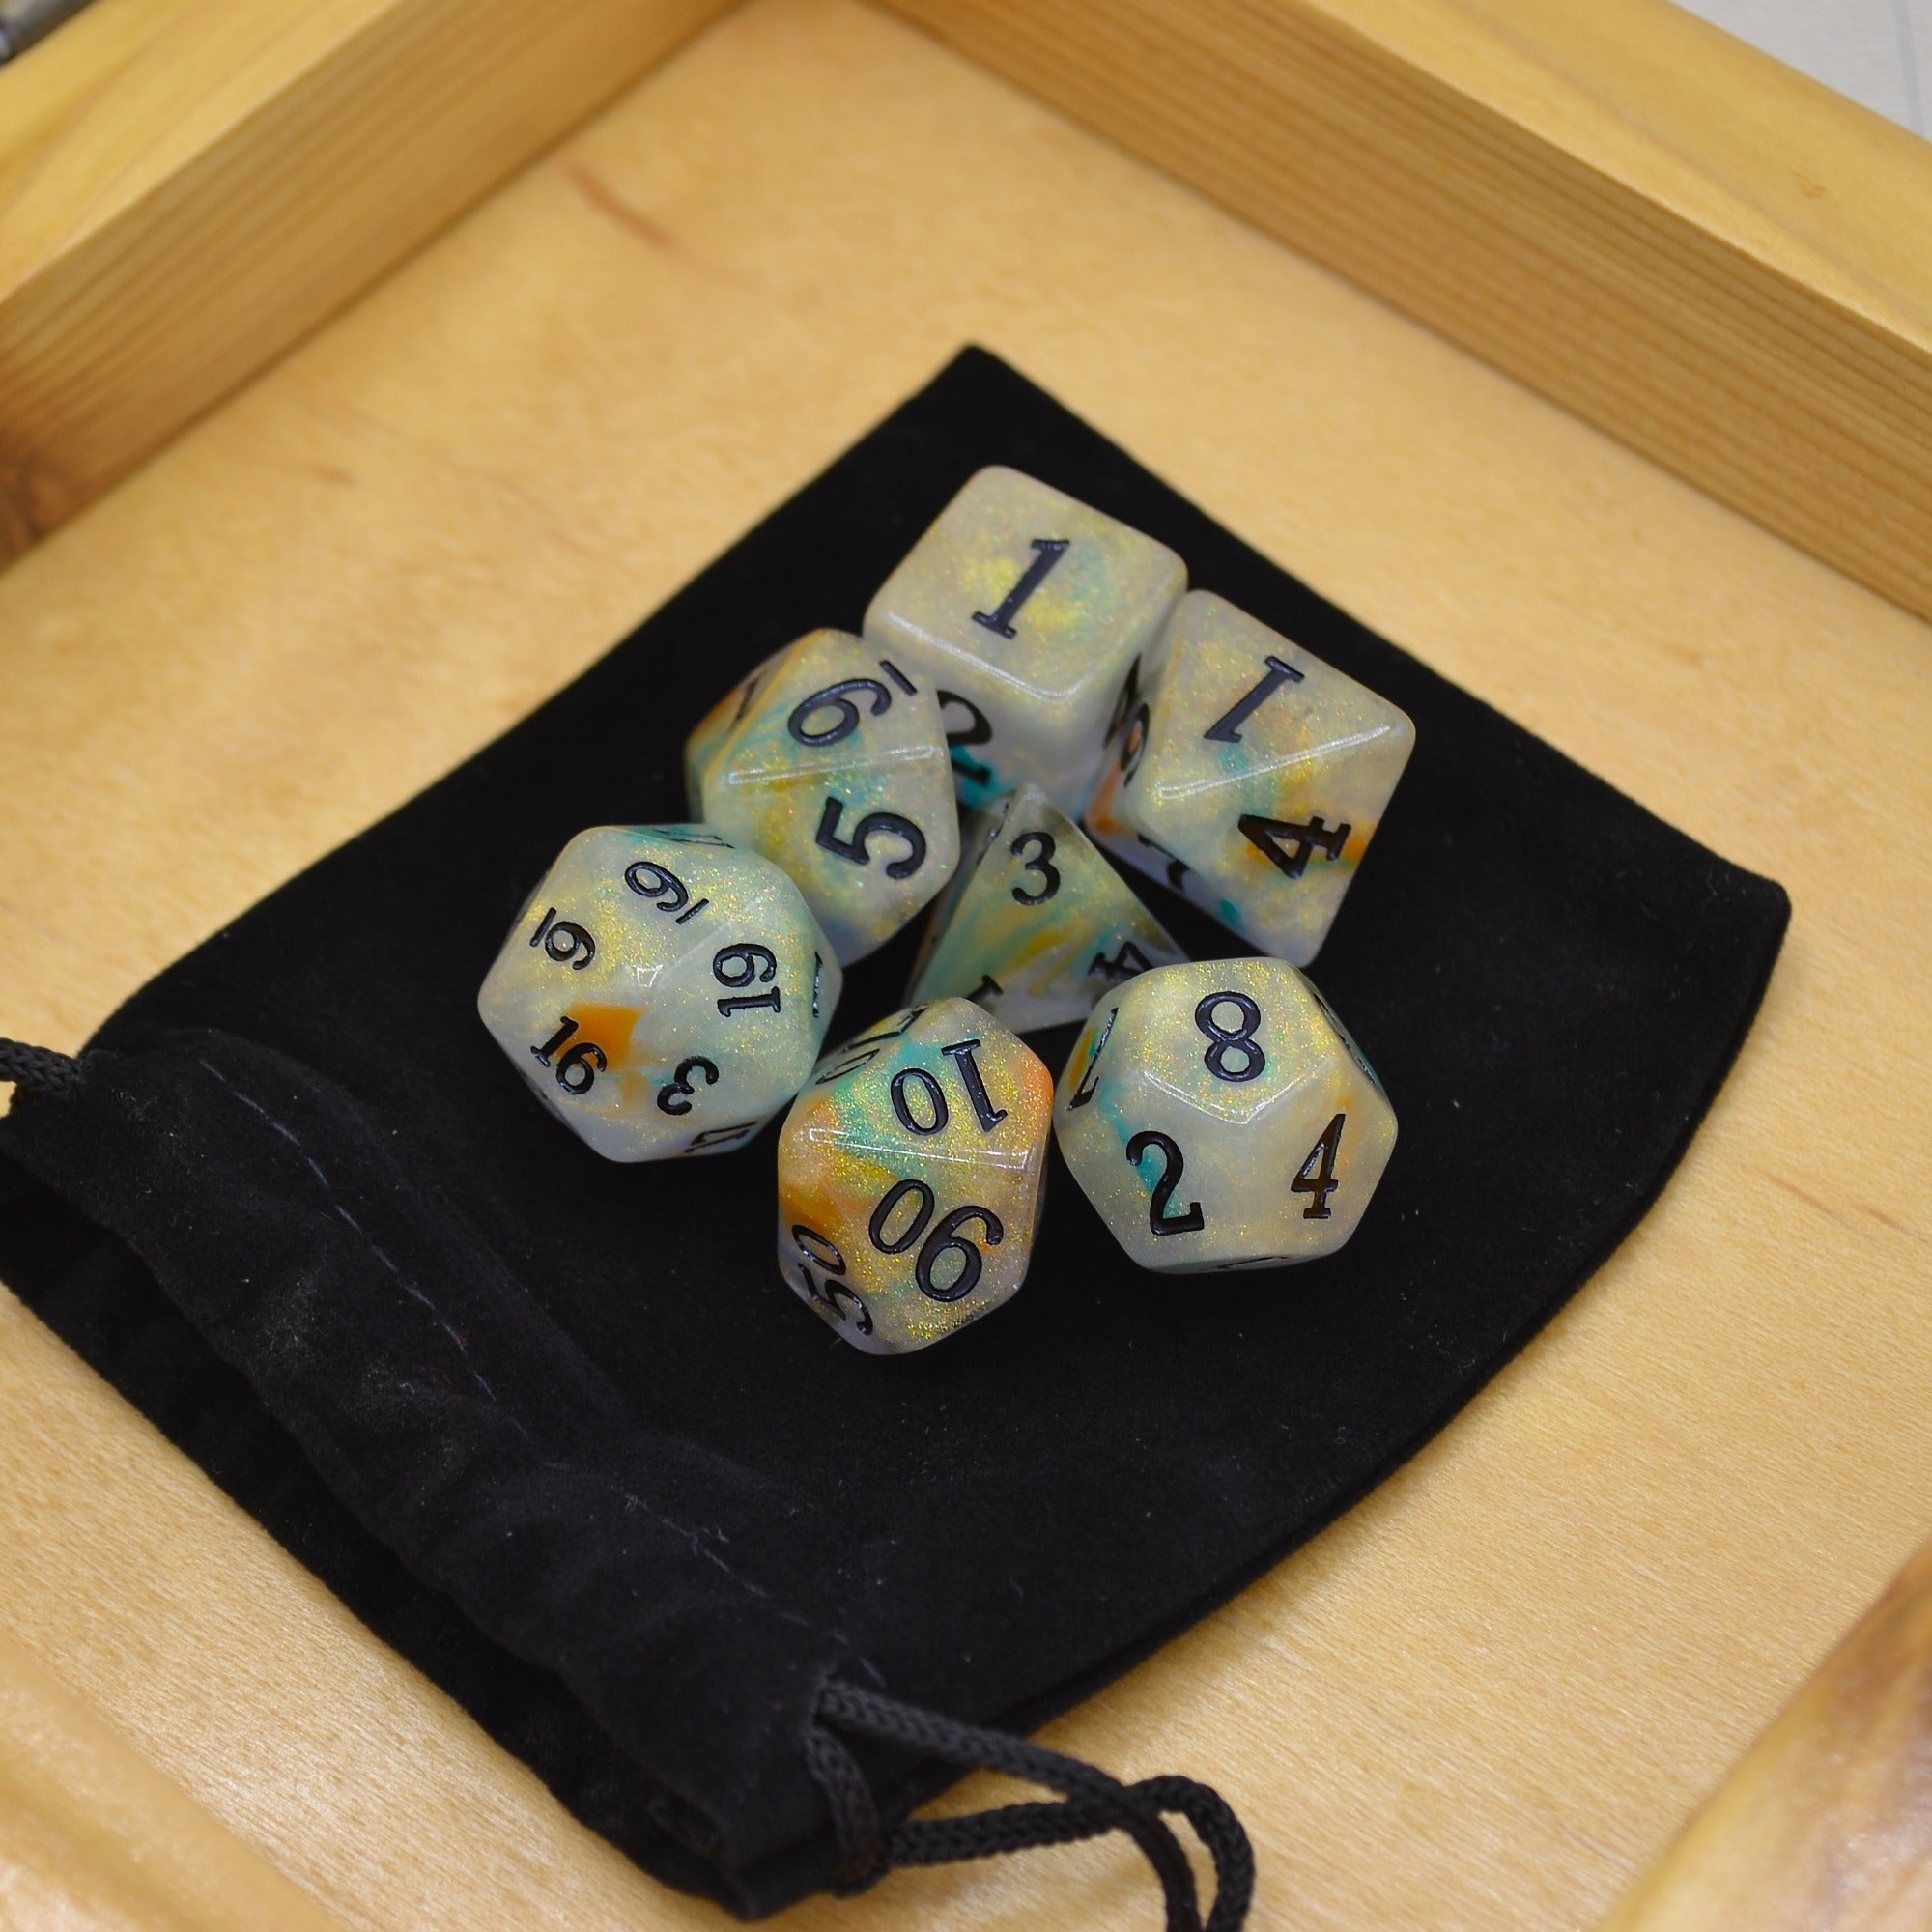 Oberon's Crown Polyhedral Dice Set - 7 Dice Total - Wildbot3d